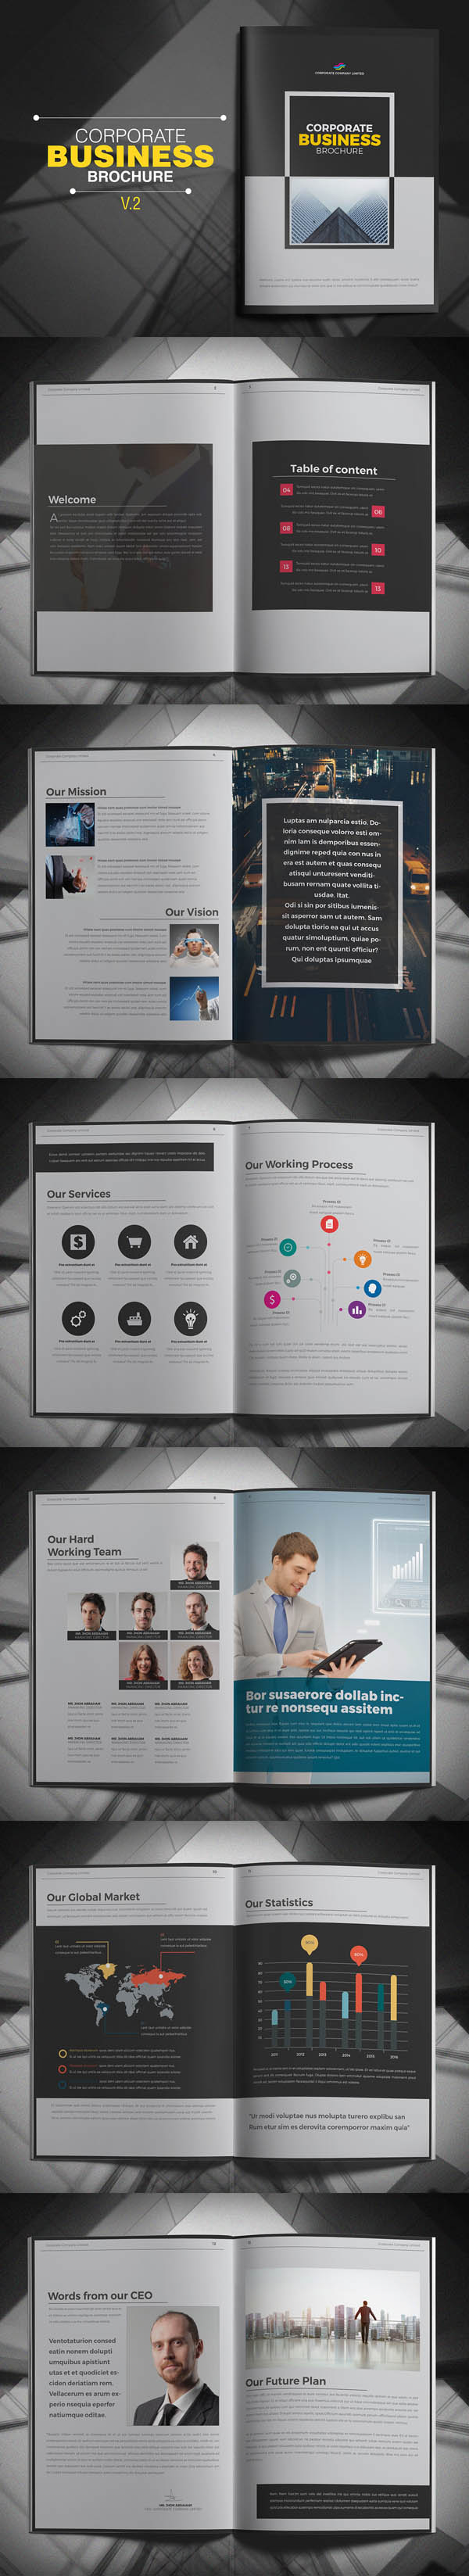 Corporate Business Brochure Design Template